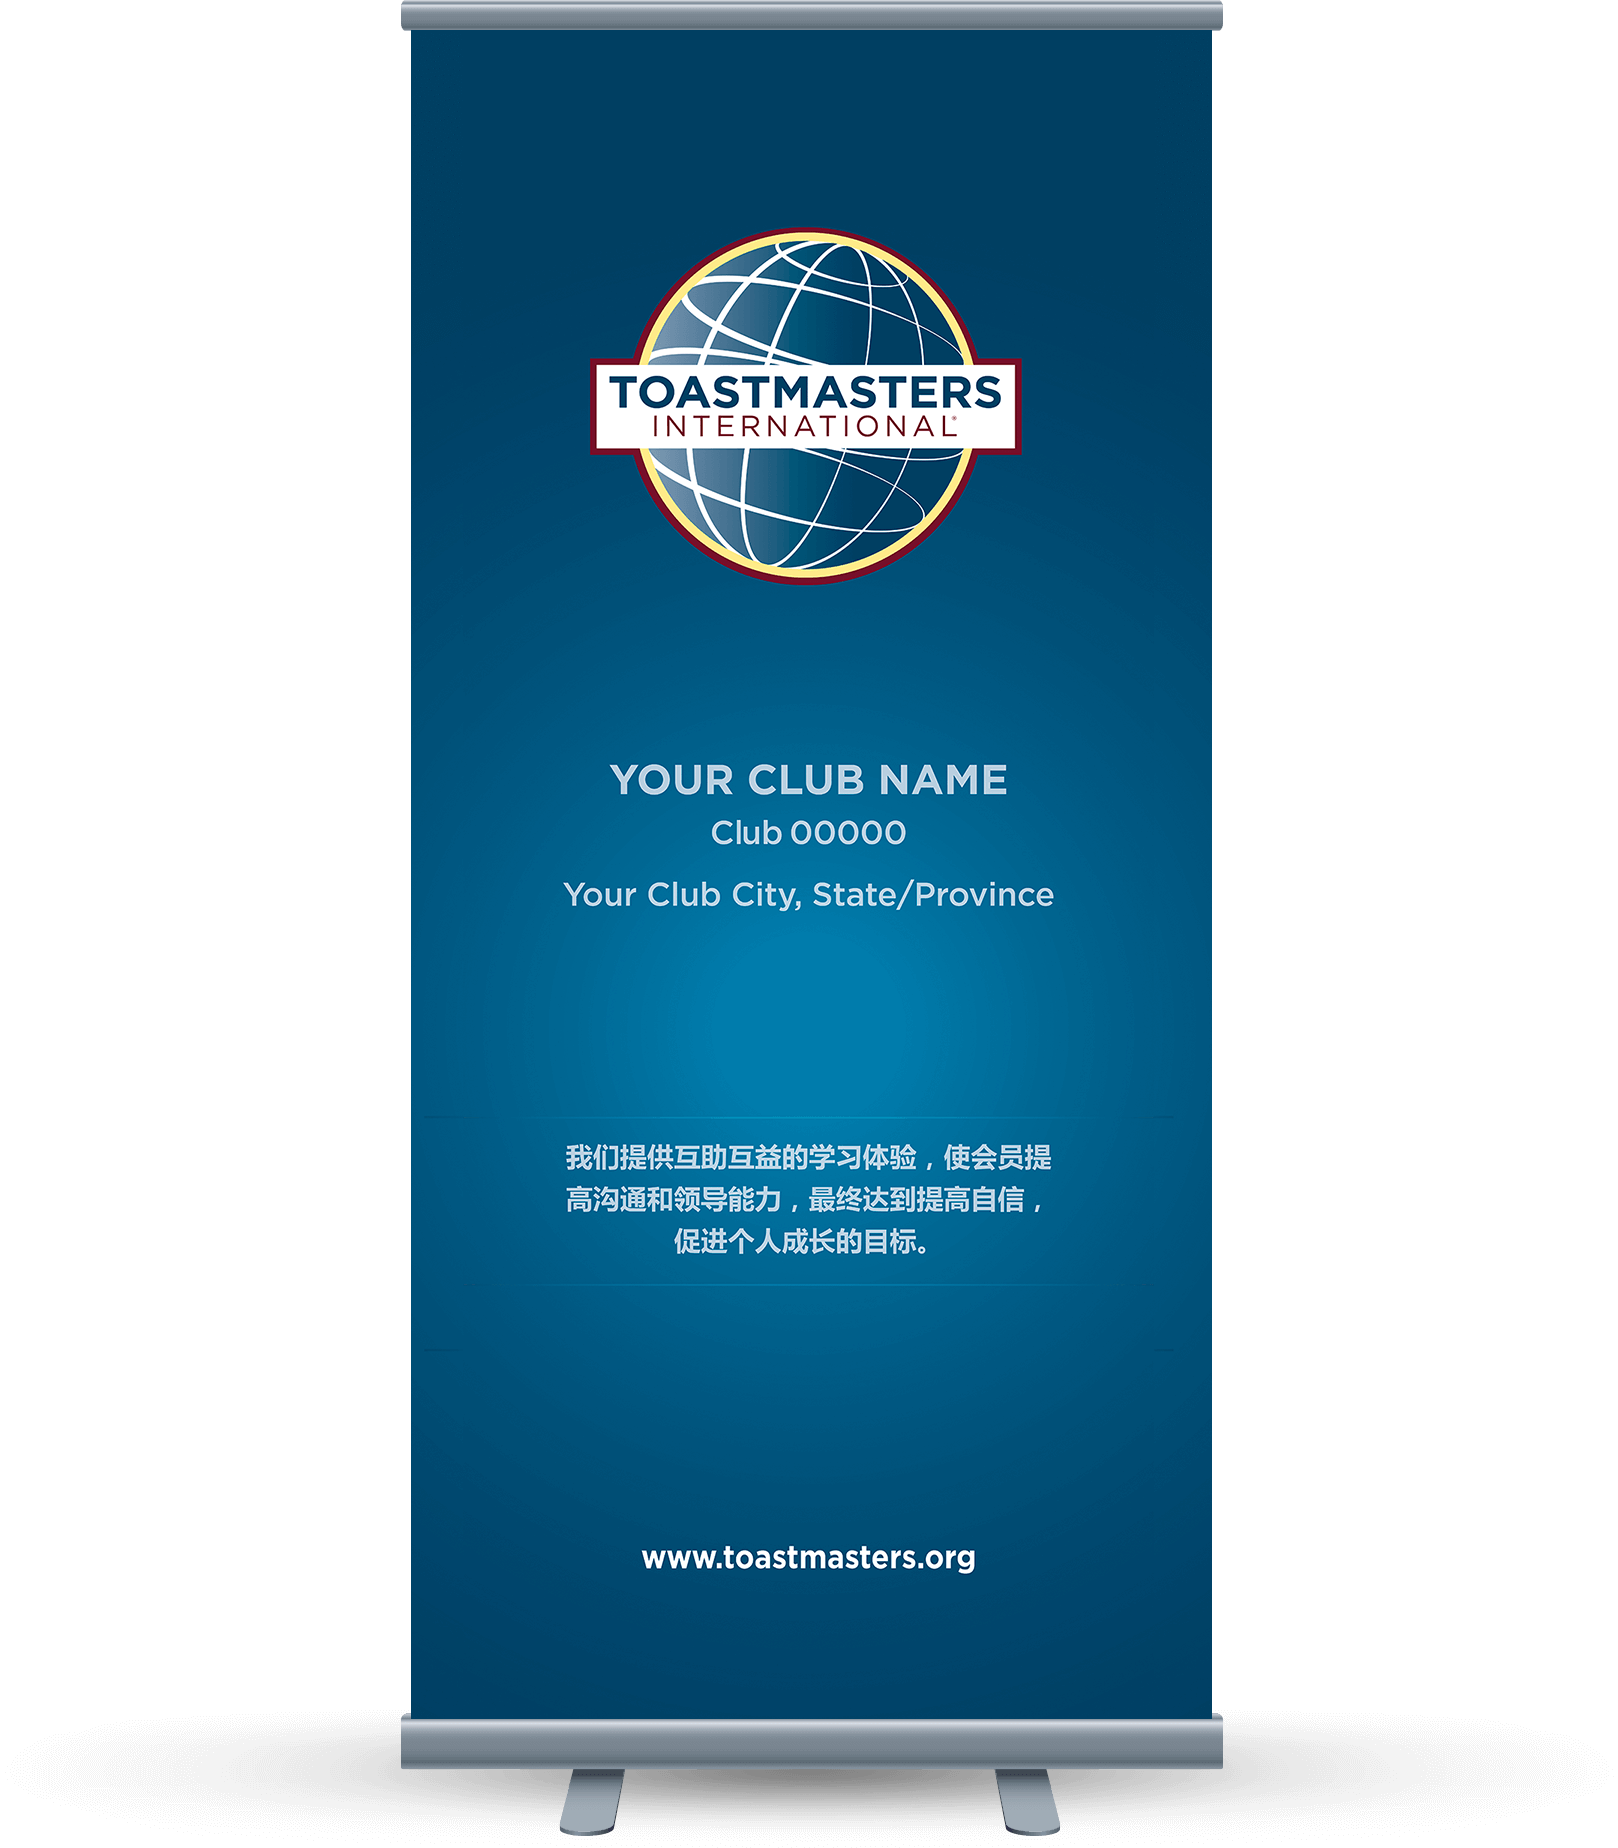 Custom-Club-Banner-Simplified-Chinese-Toastmasters-Navy